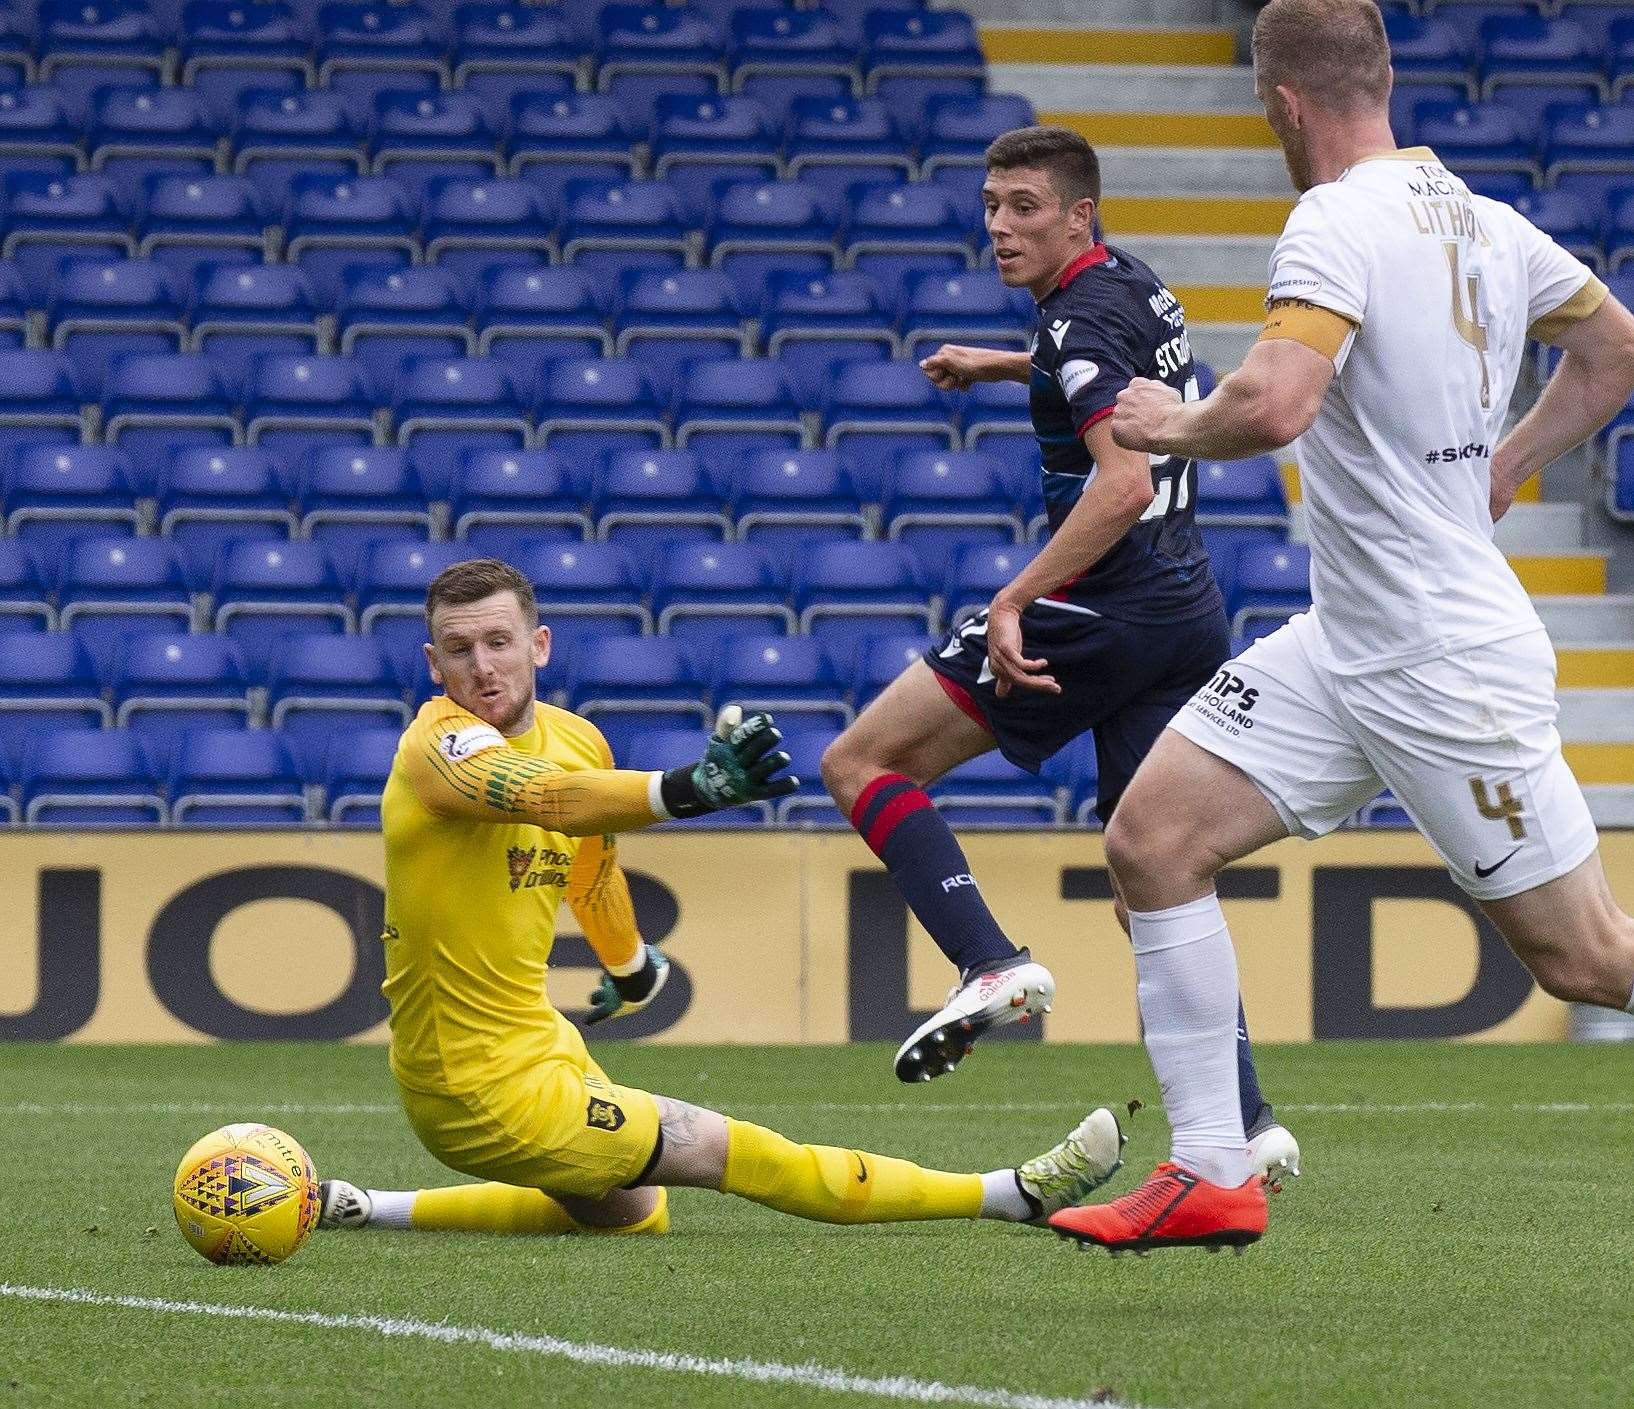 Picture - Ken Macpherson, Inverness.